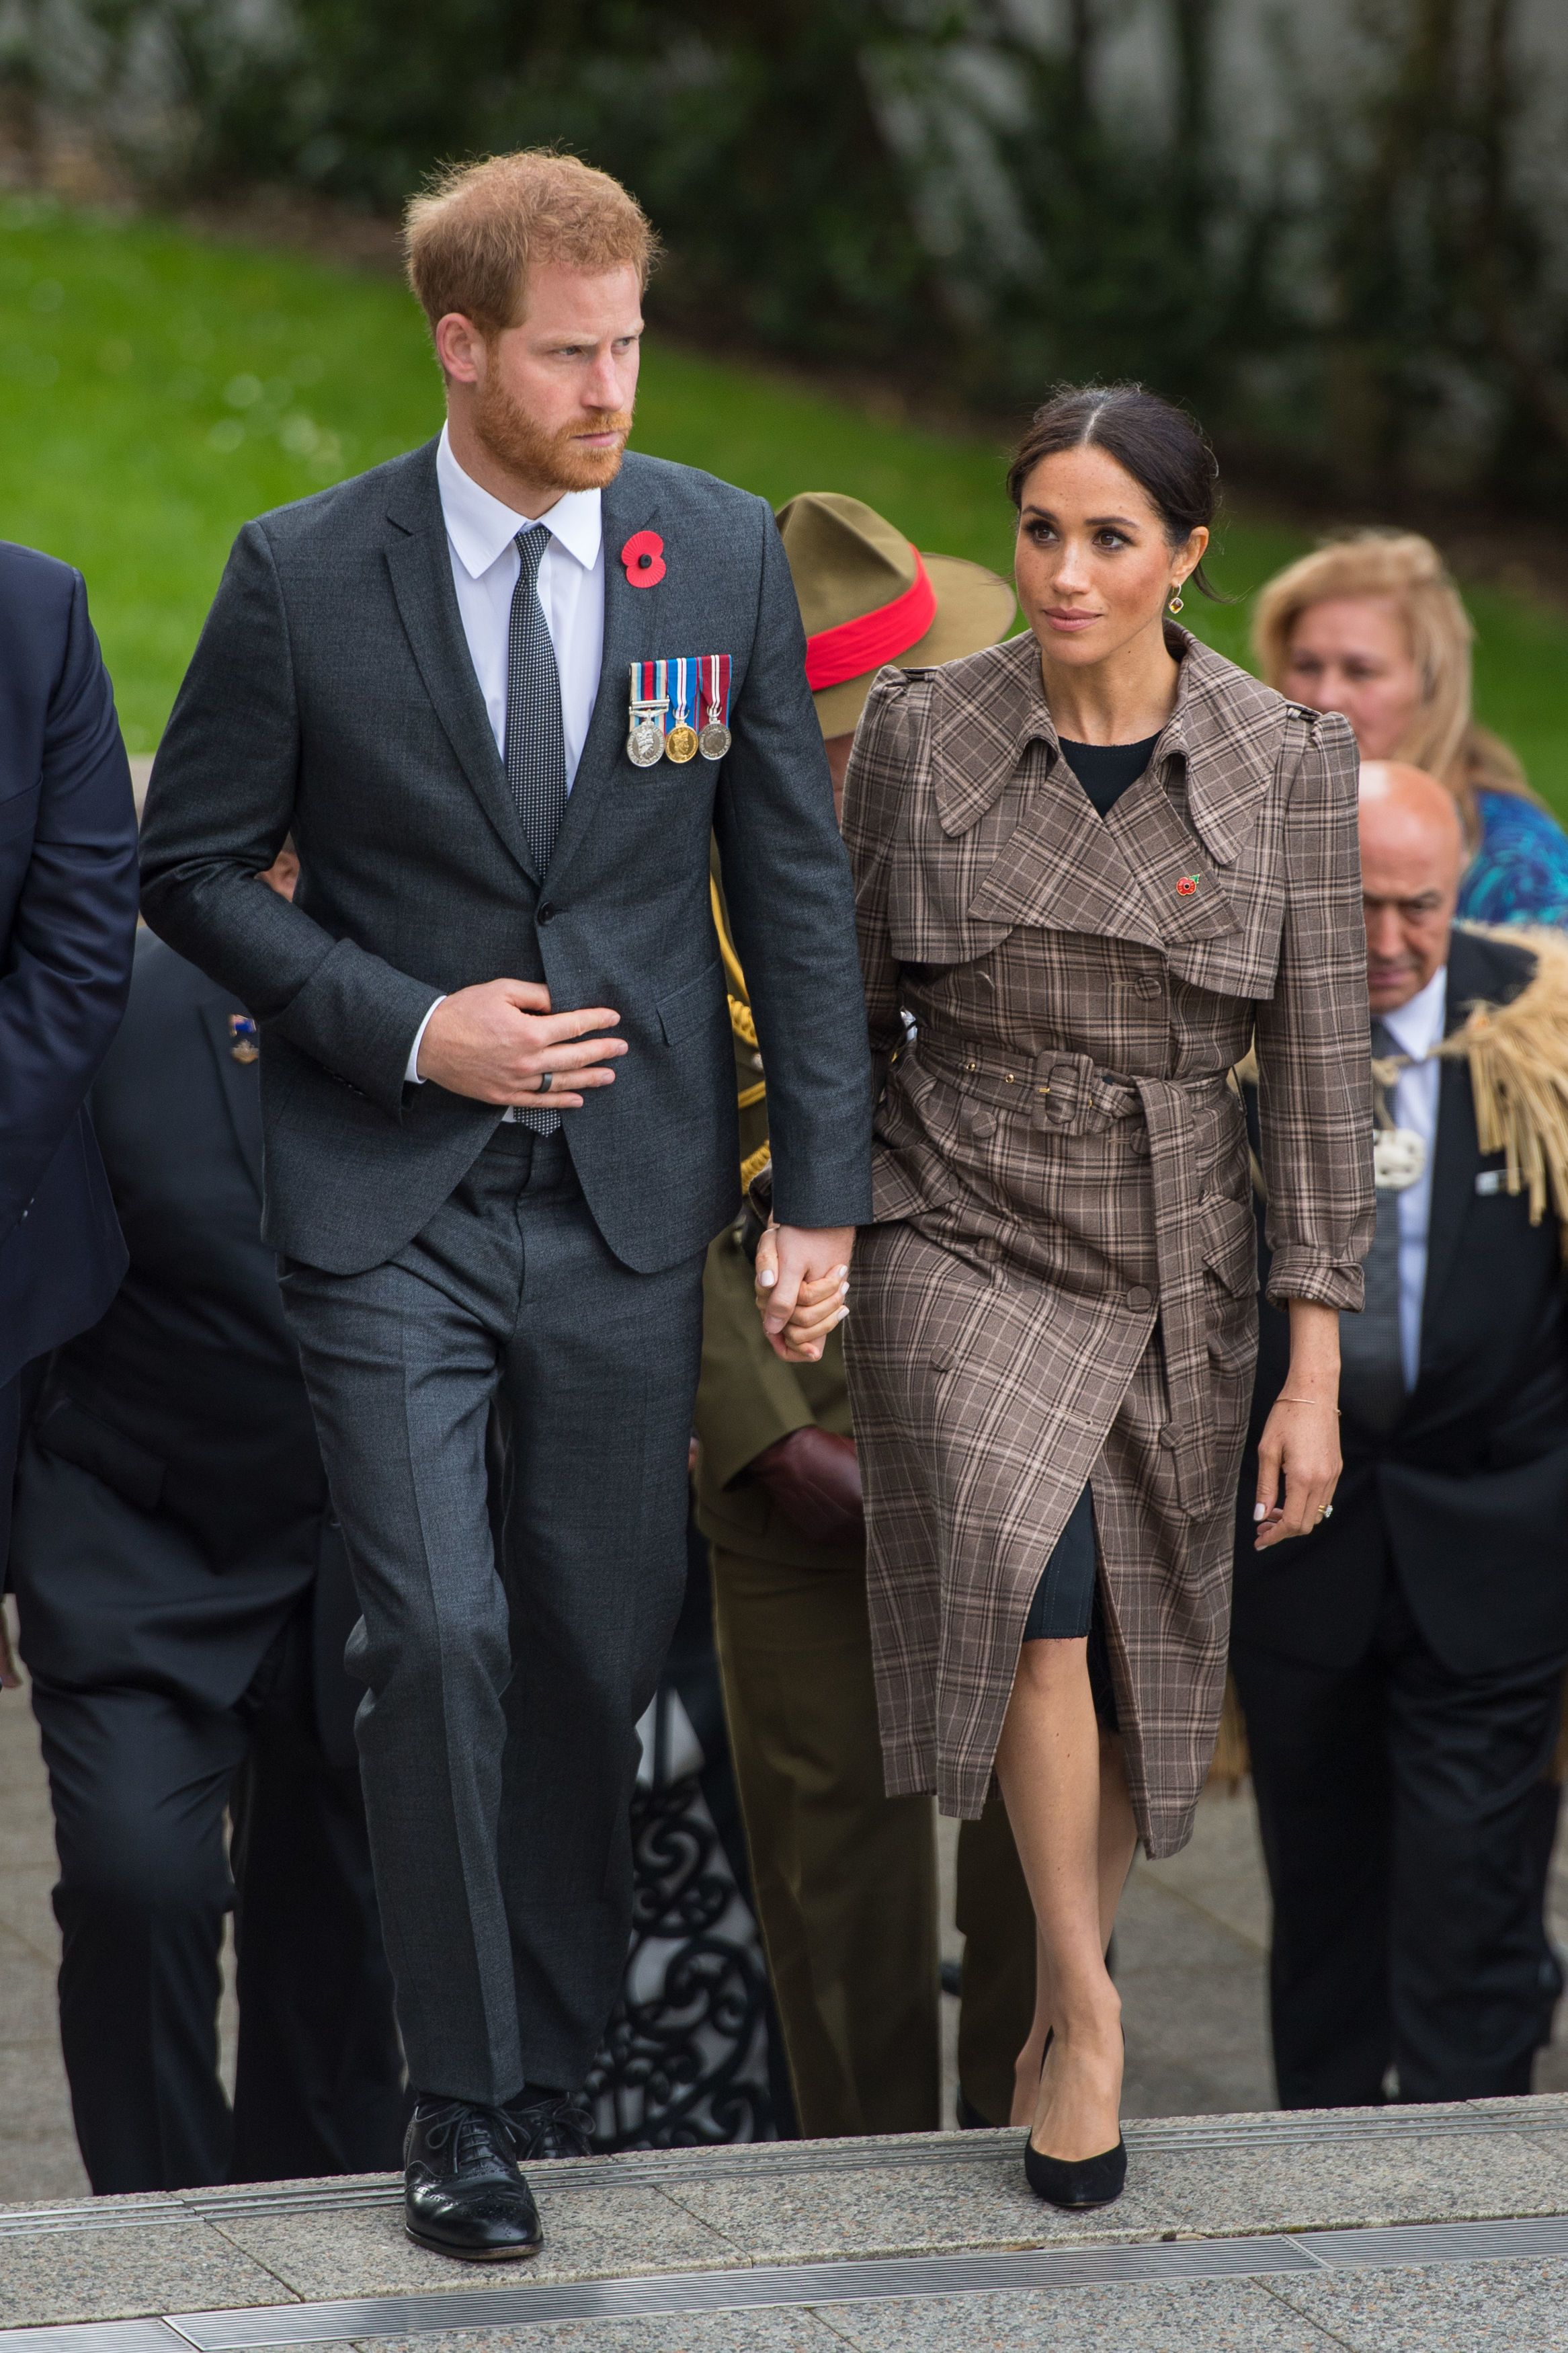 Royal tour of New Zealand - Day One